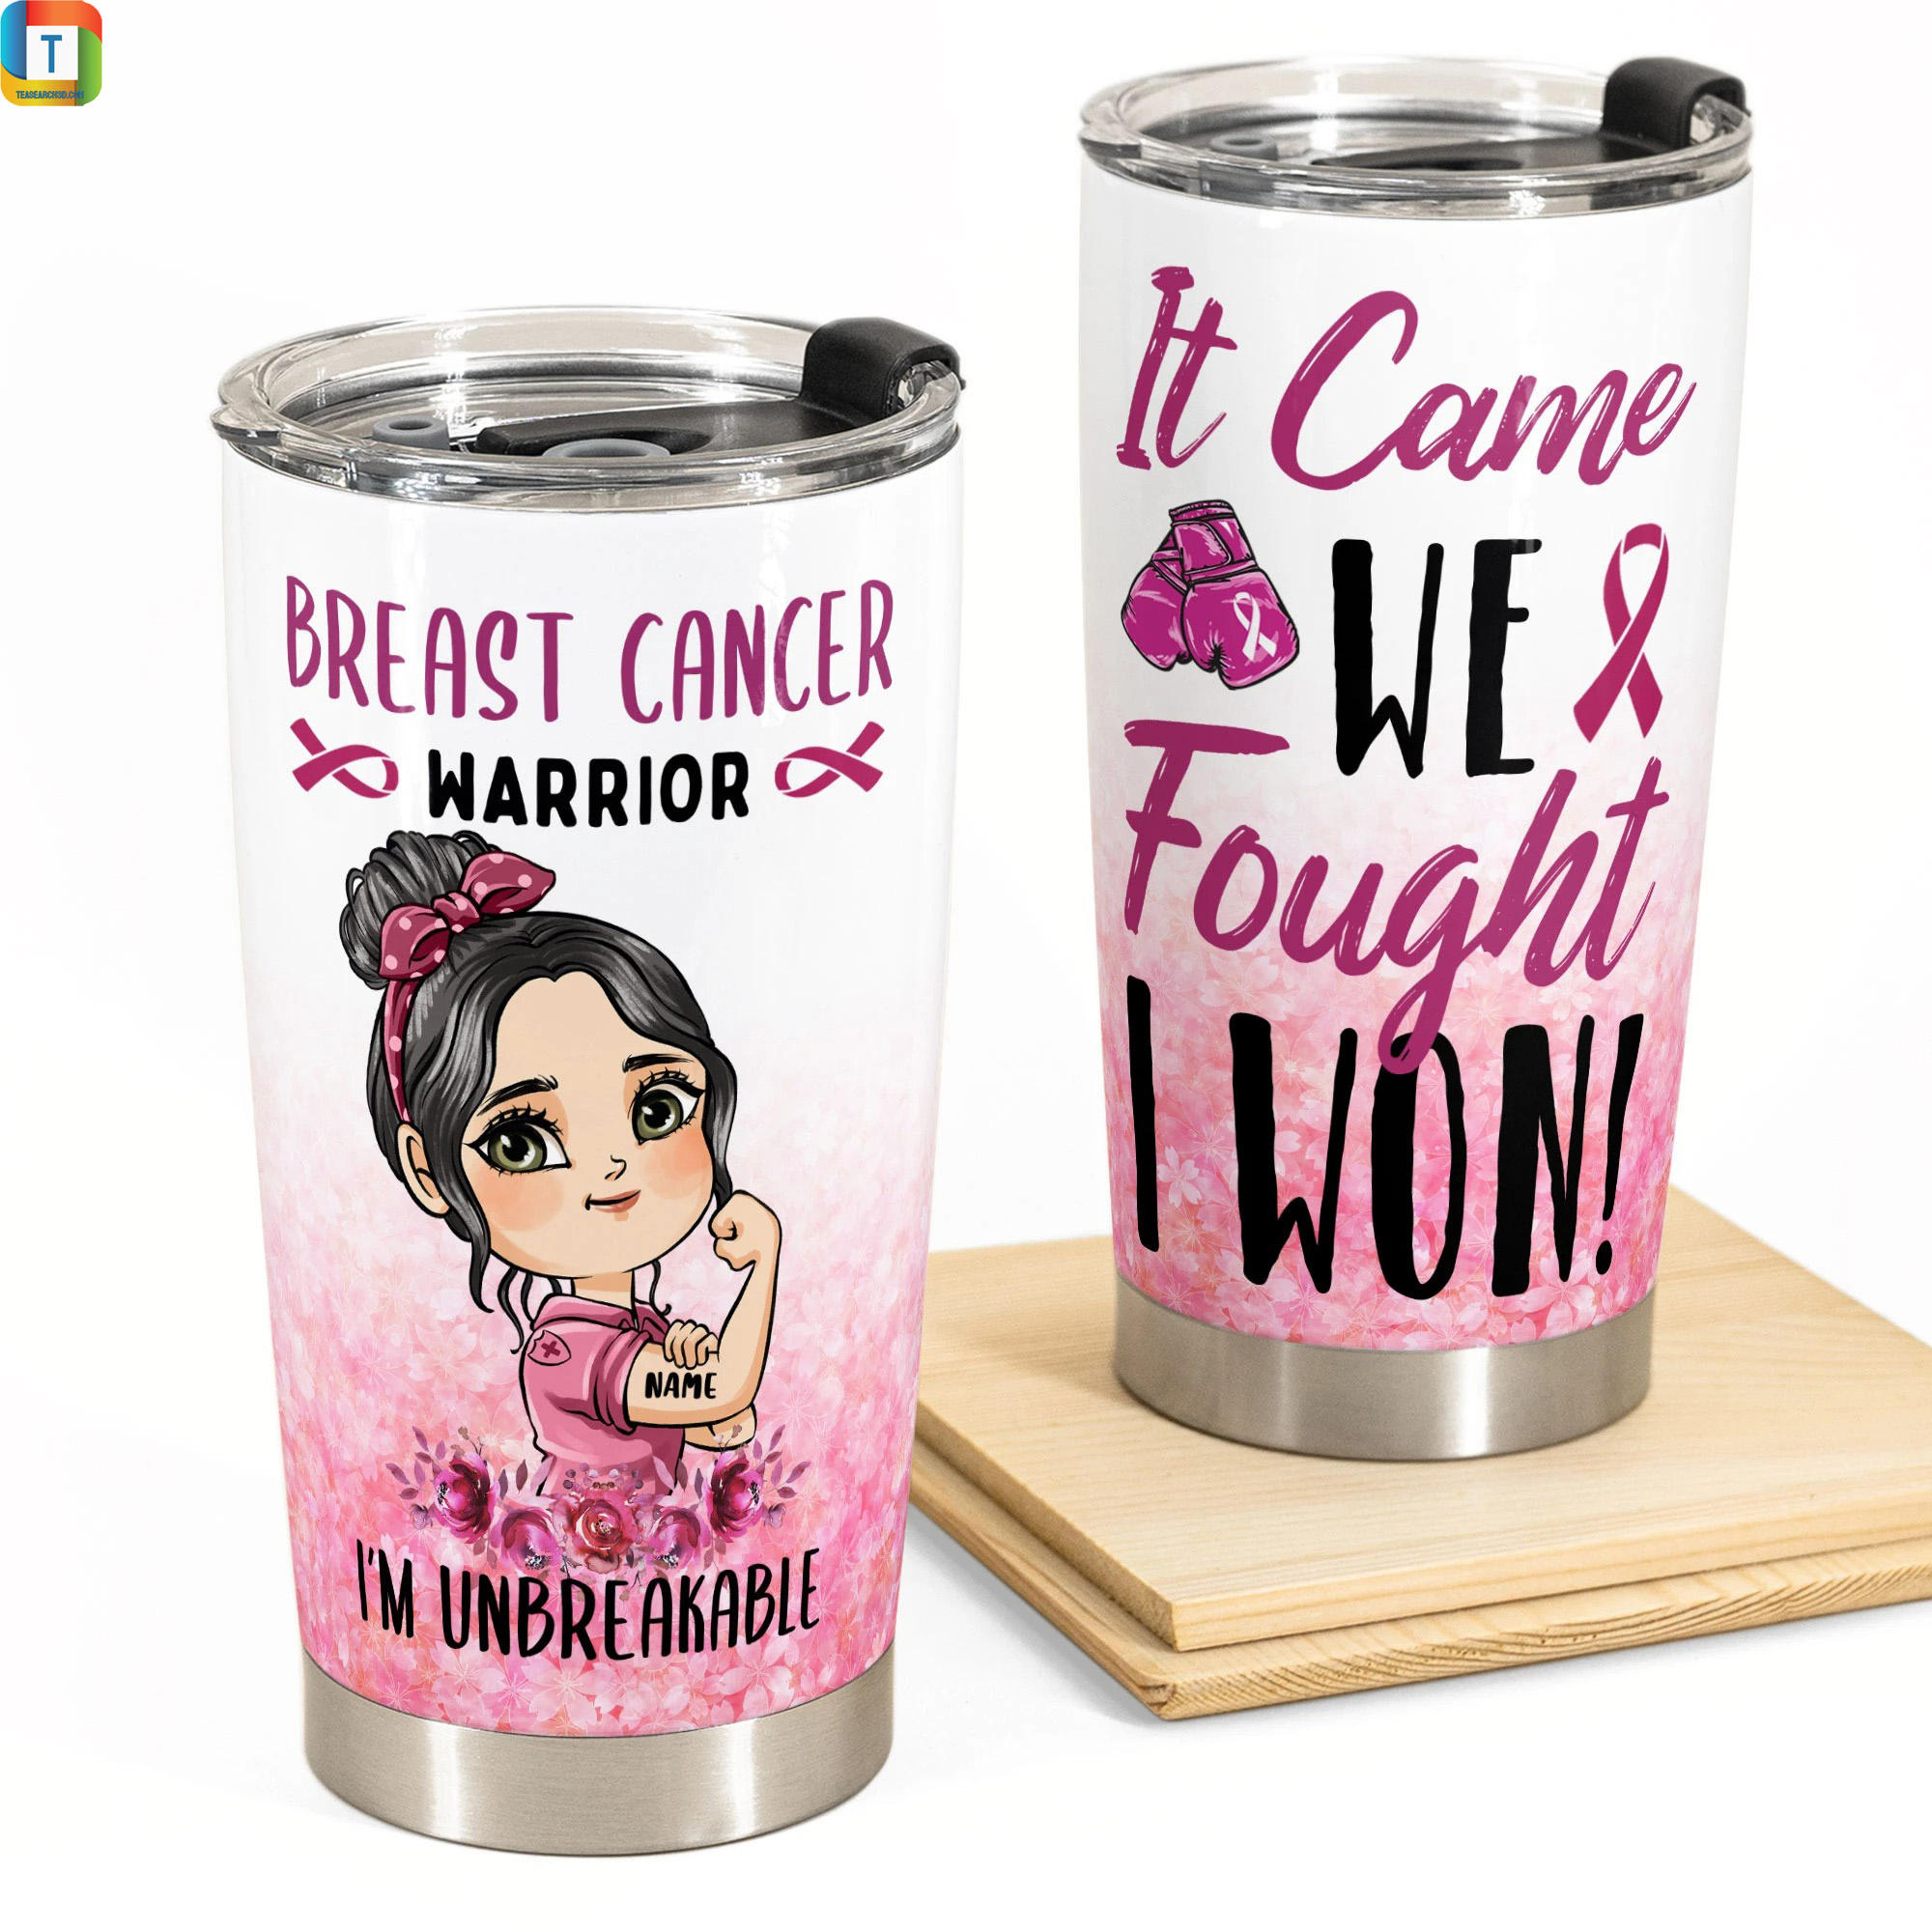 Breast Cancer Warriors I'm unbreakable it came we fought I won personalized tumbler